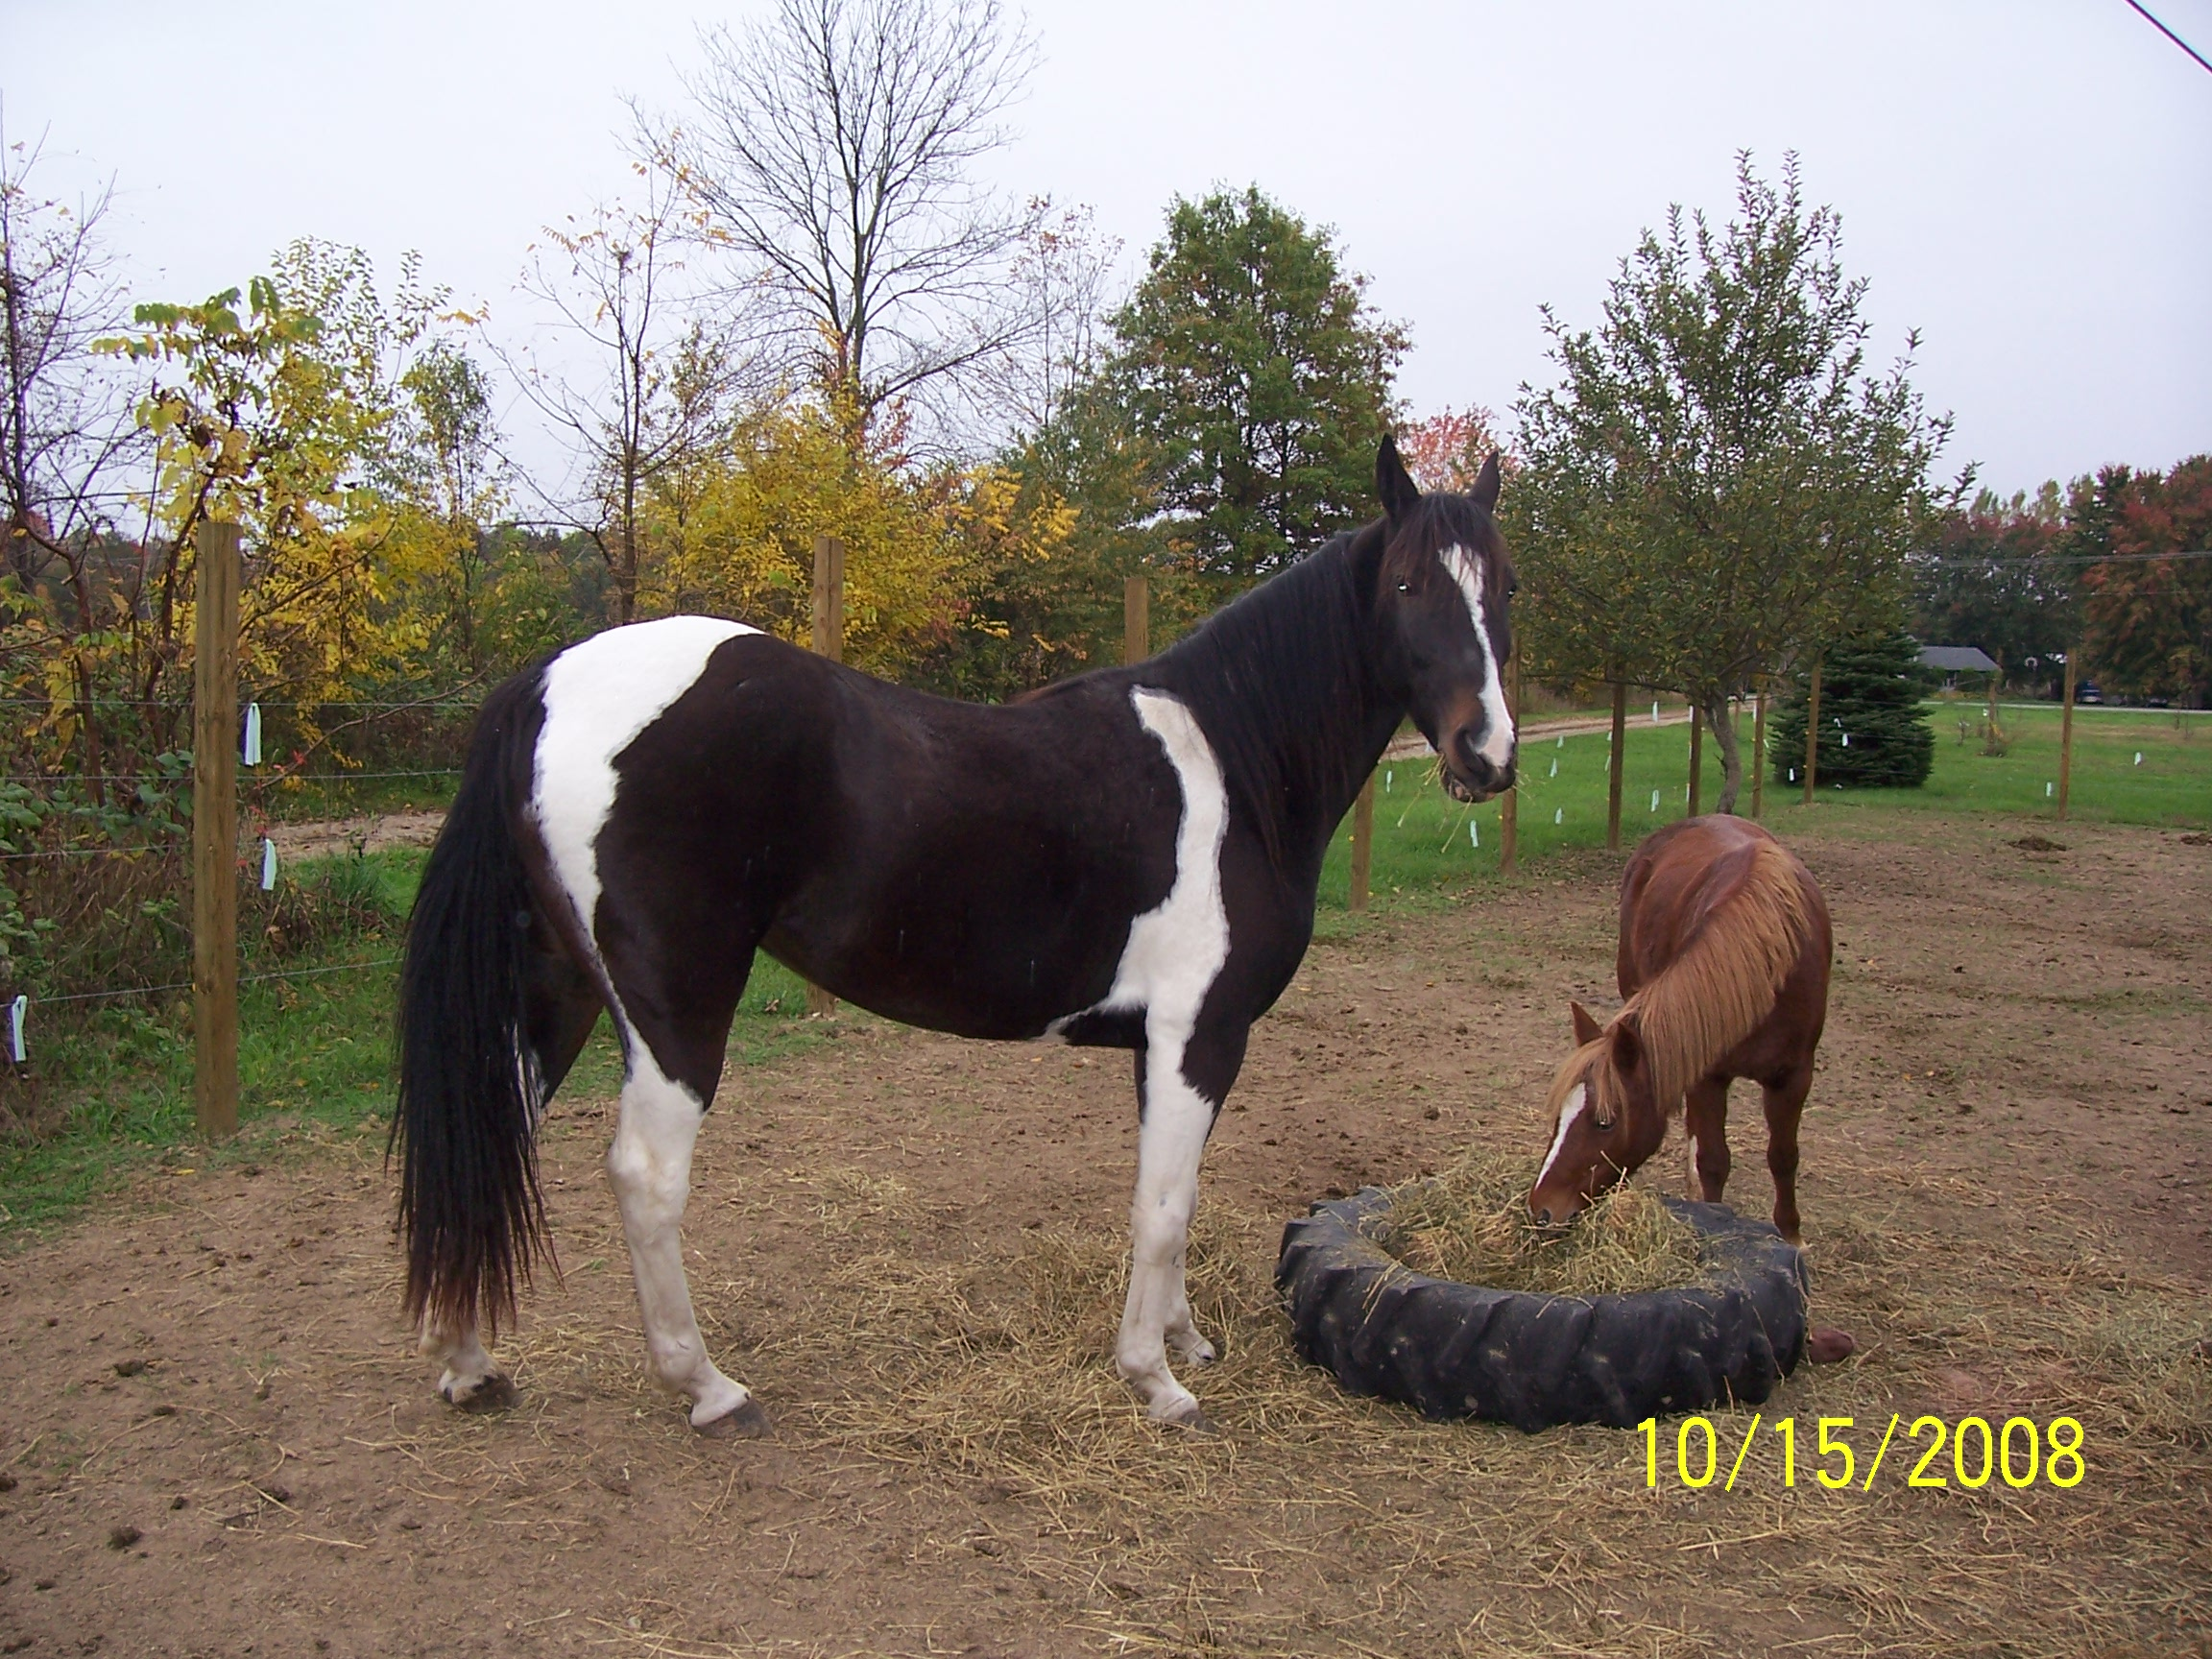 Dixie Ann Reg. Spotted Saddle Mare